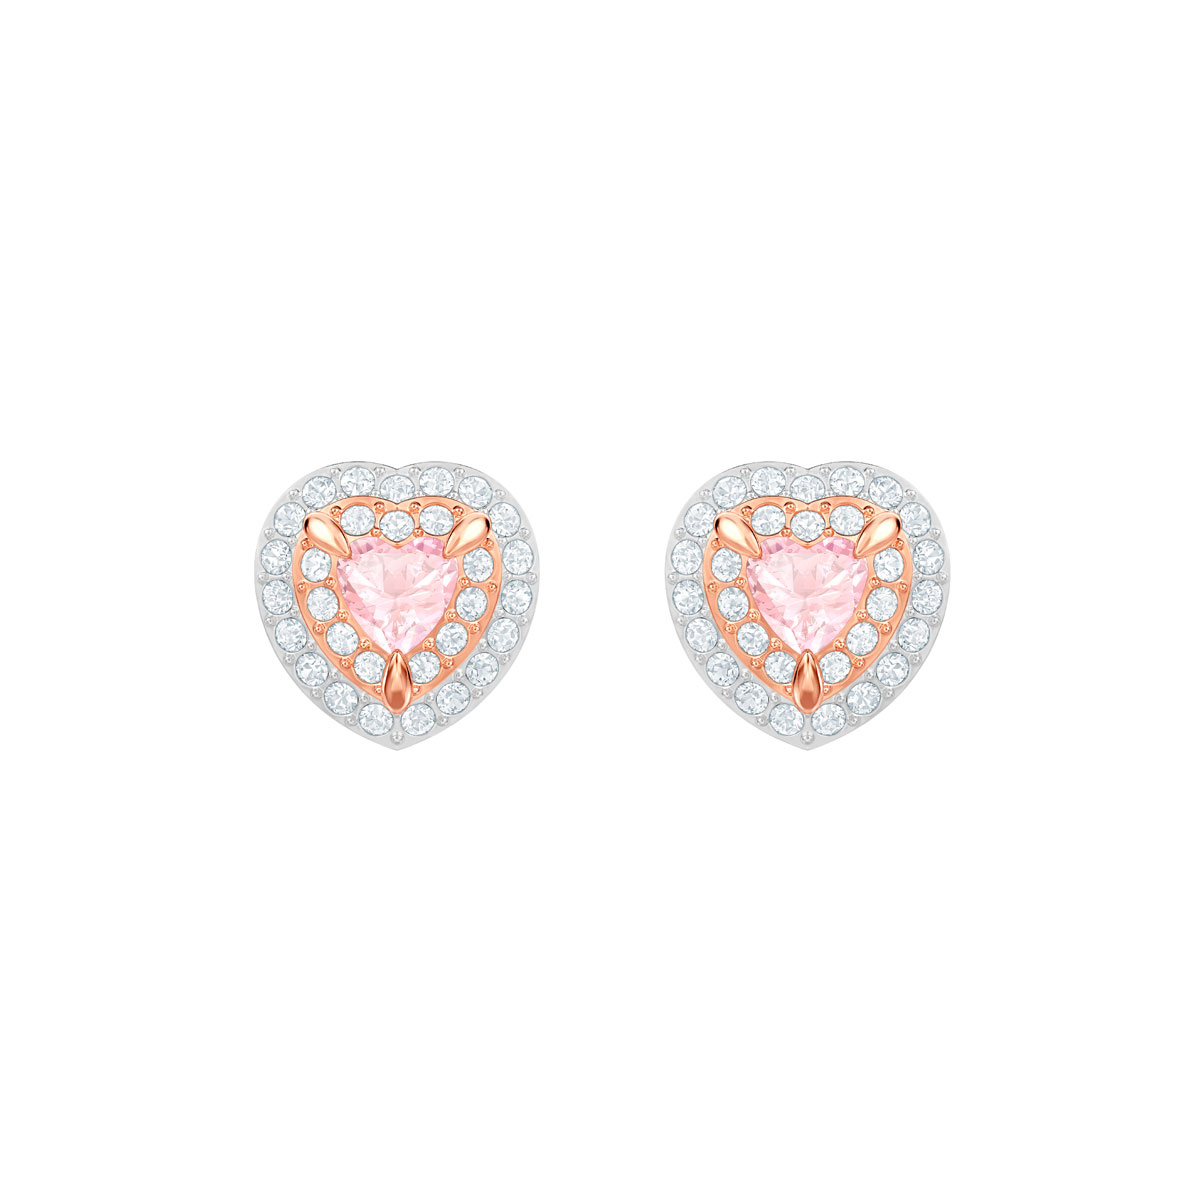 Swarovski One Stud Pierced Earrings, Multi Colored, Rose Gold